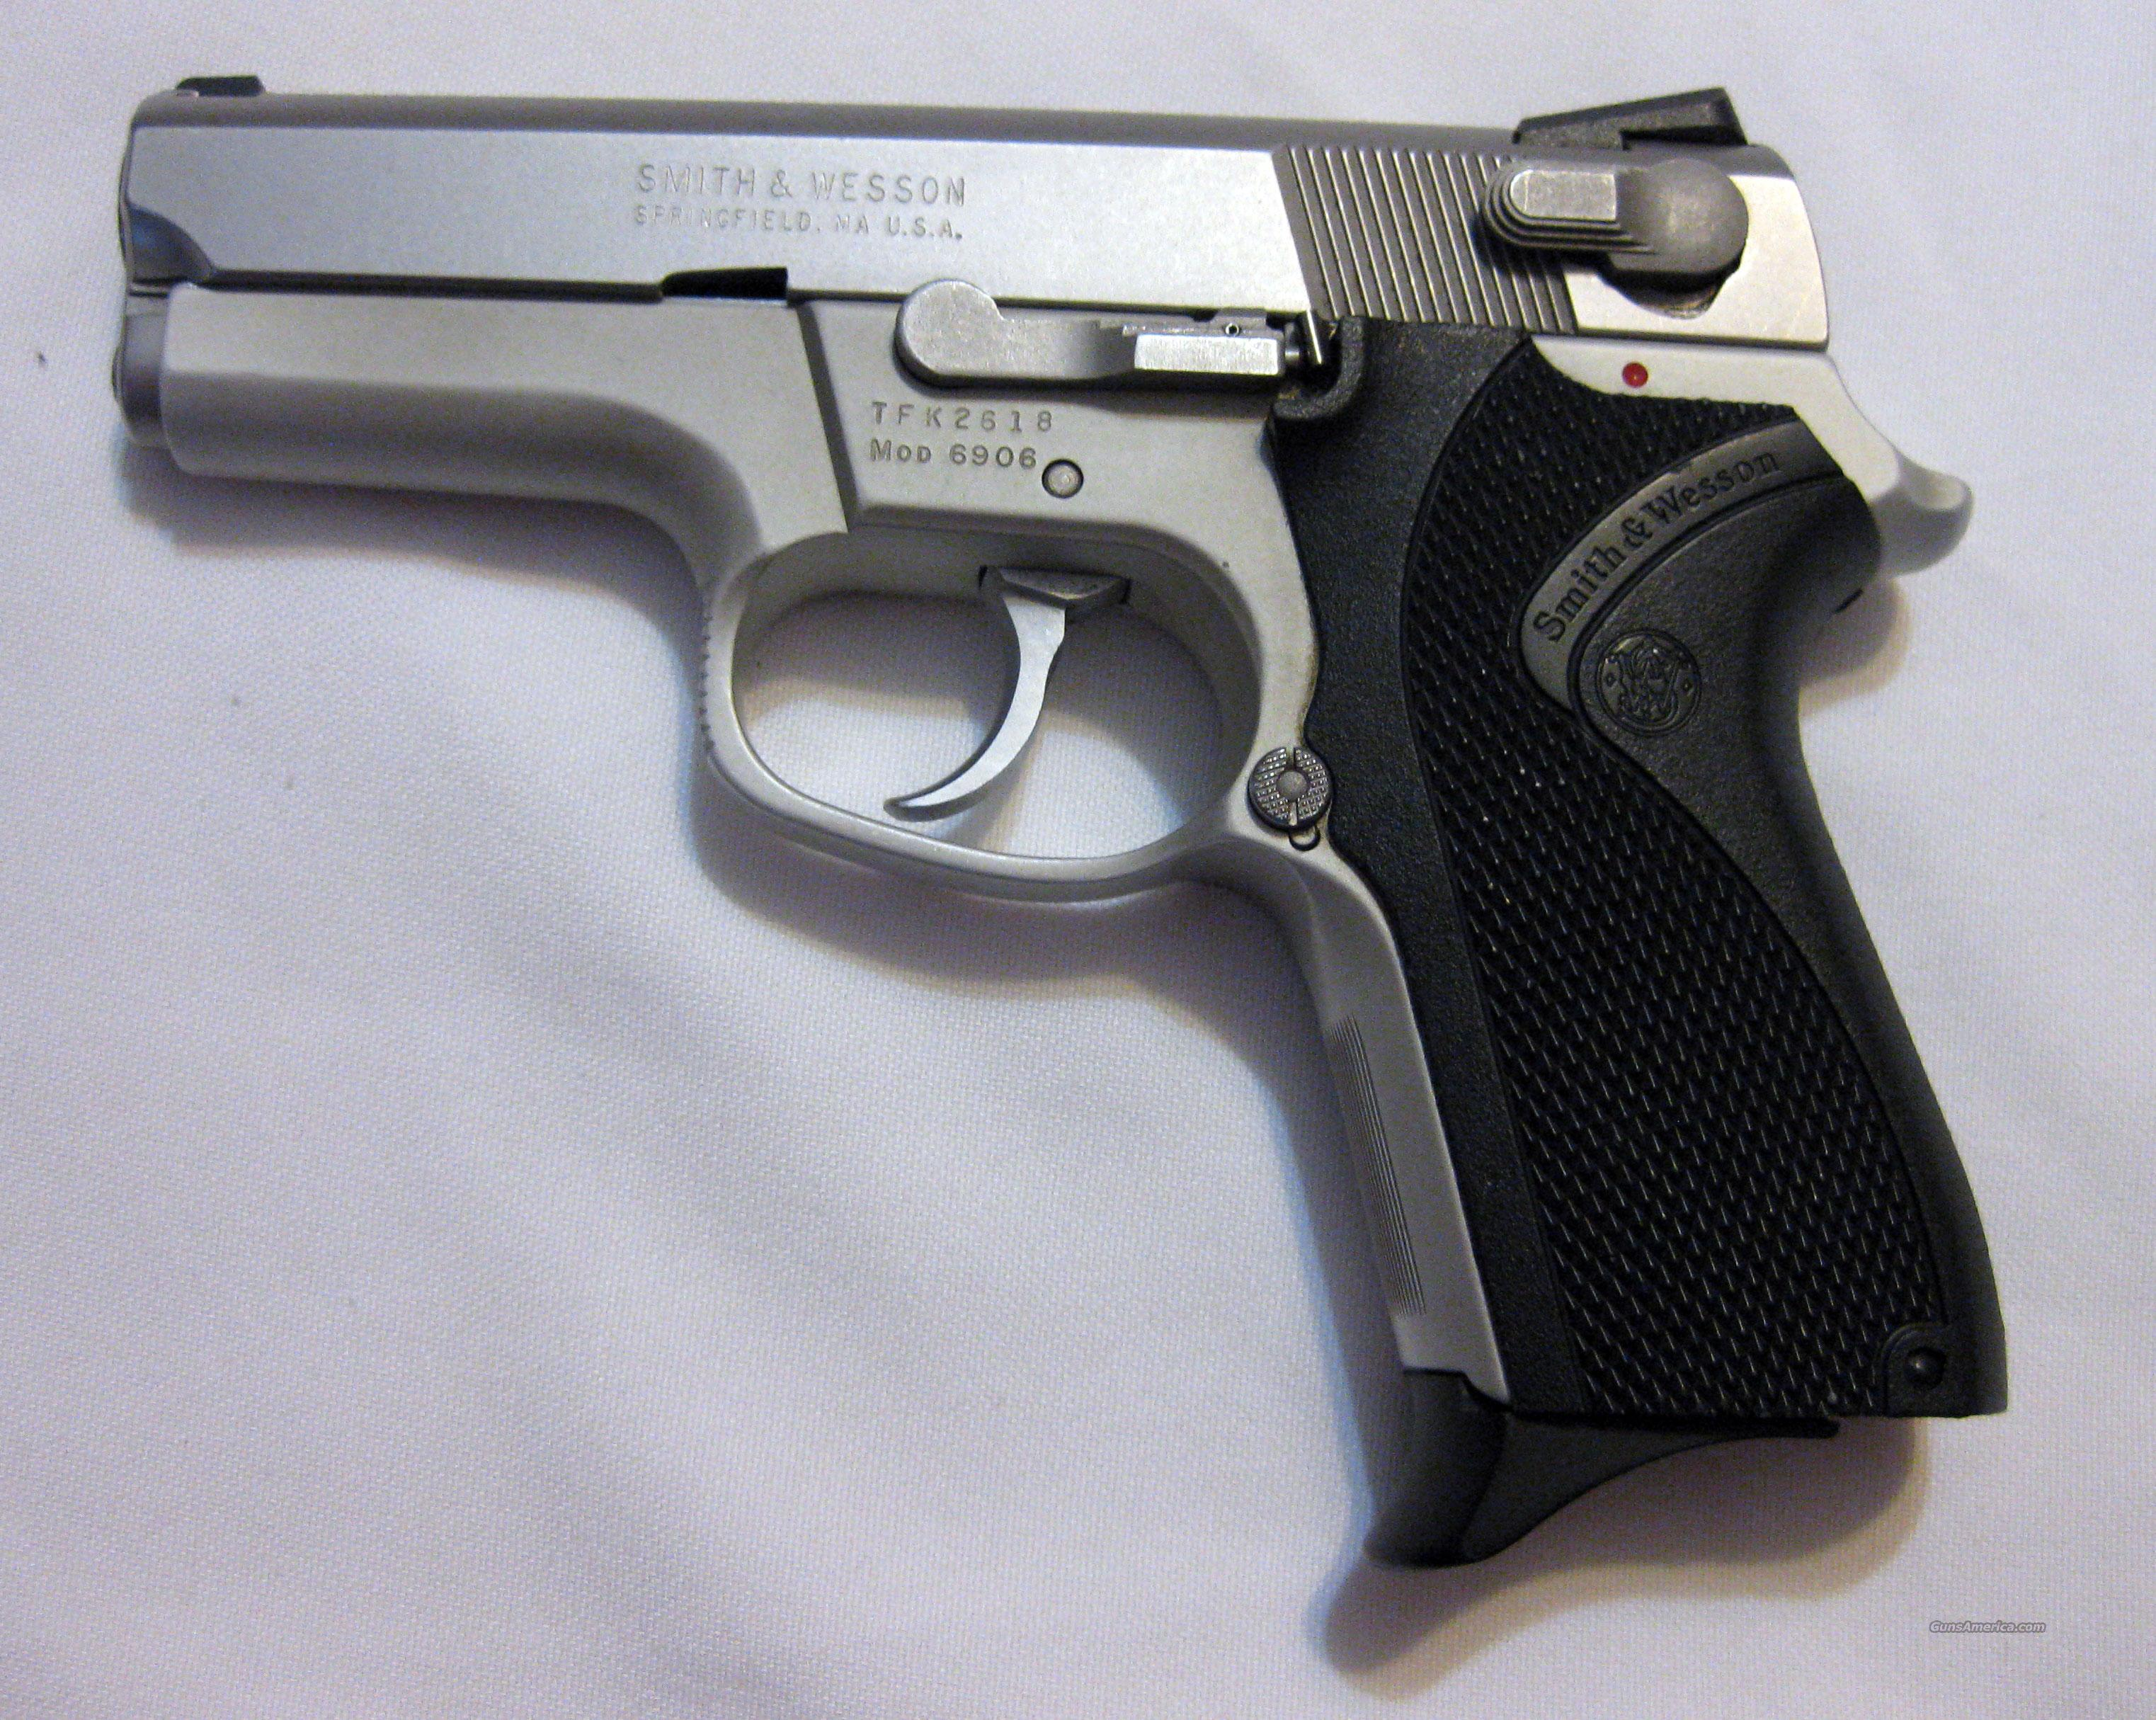 Smith & Wesson Mdl 6906  Guns > Pistols > Smith & Wesson Pistols - Autos > Alloy Frame